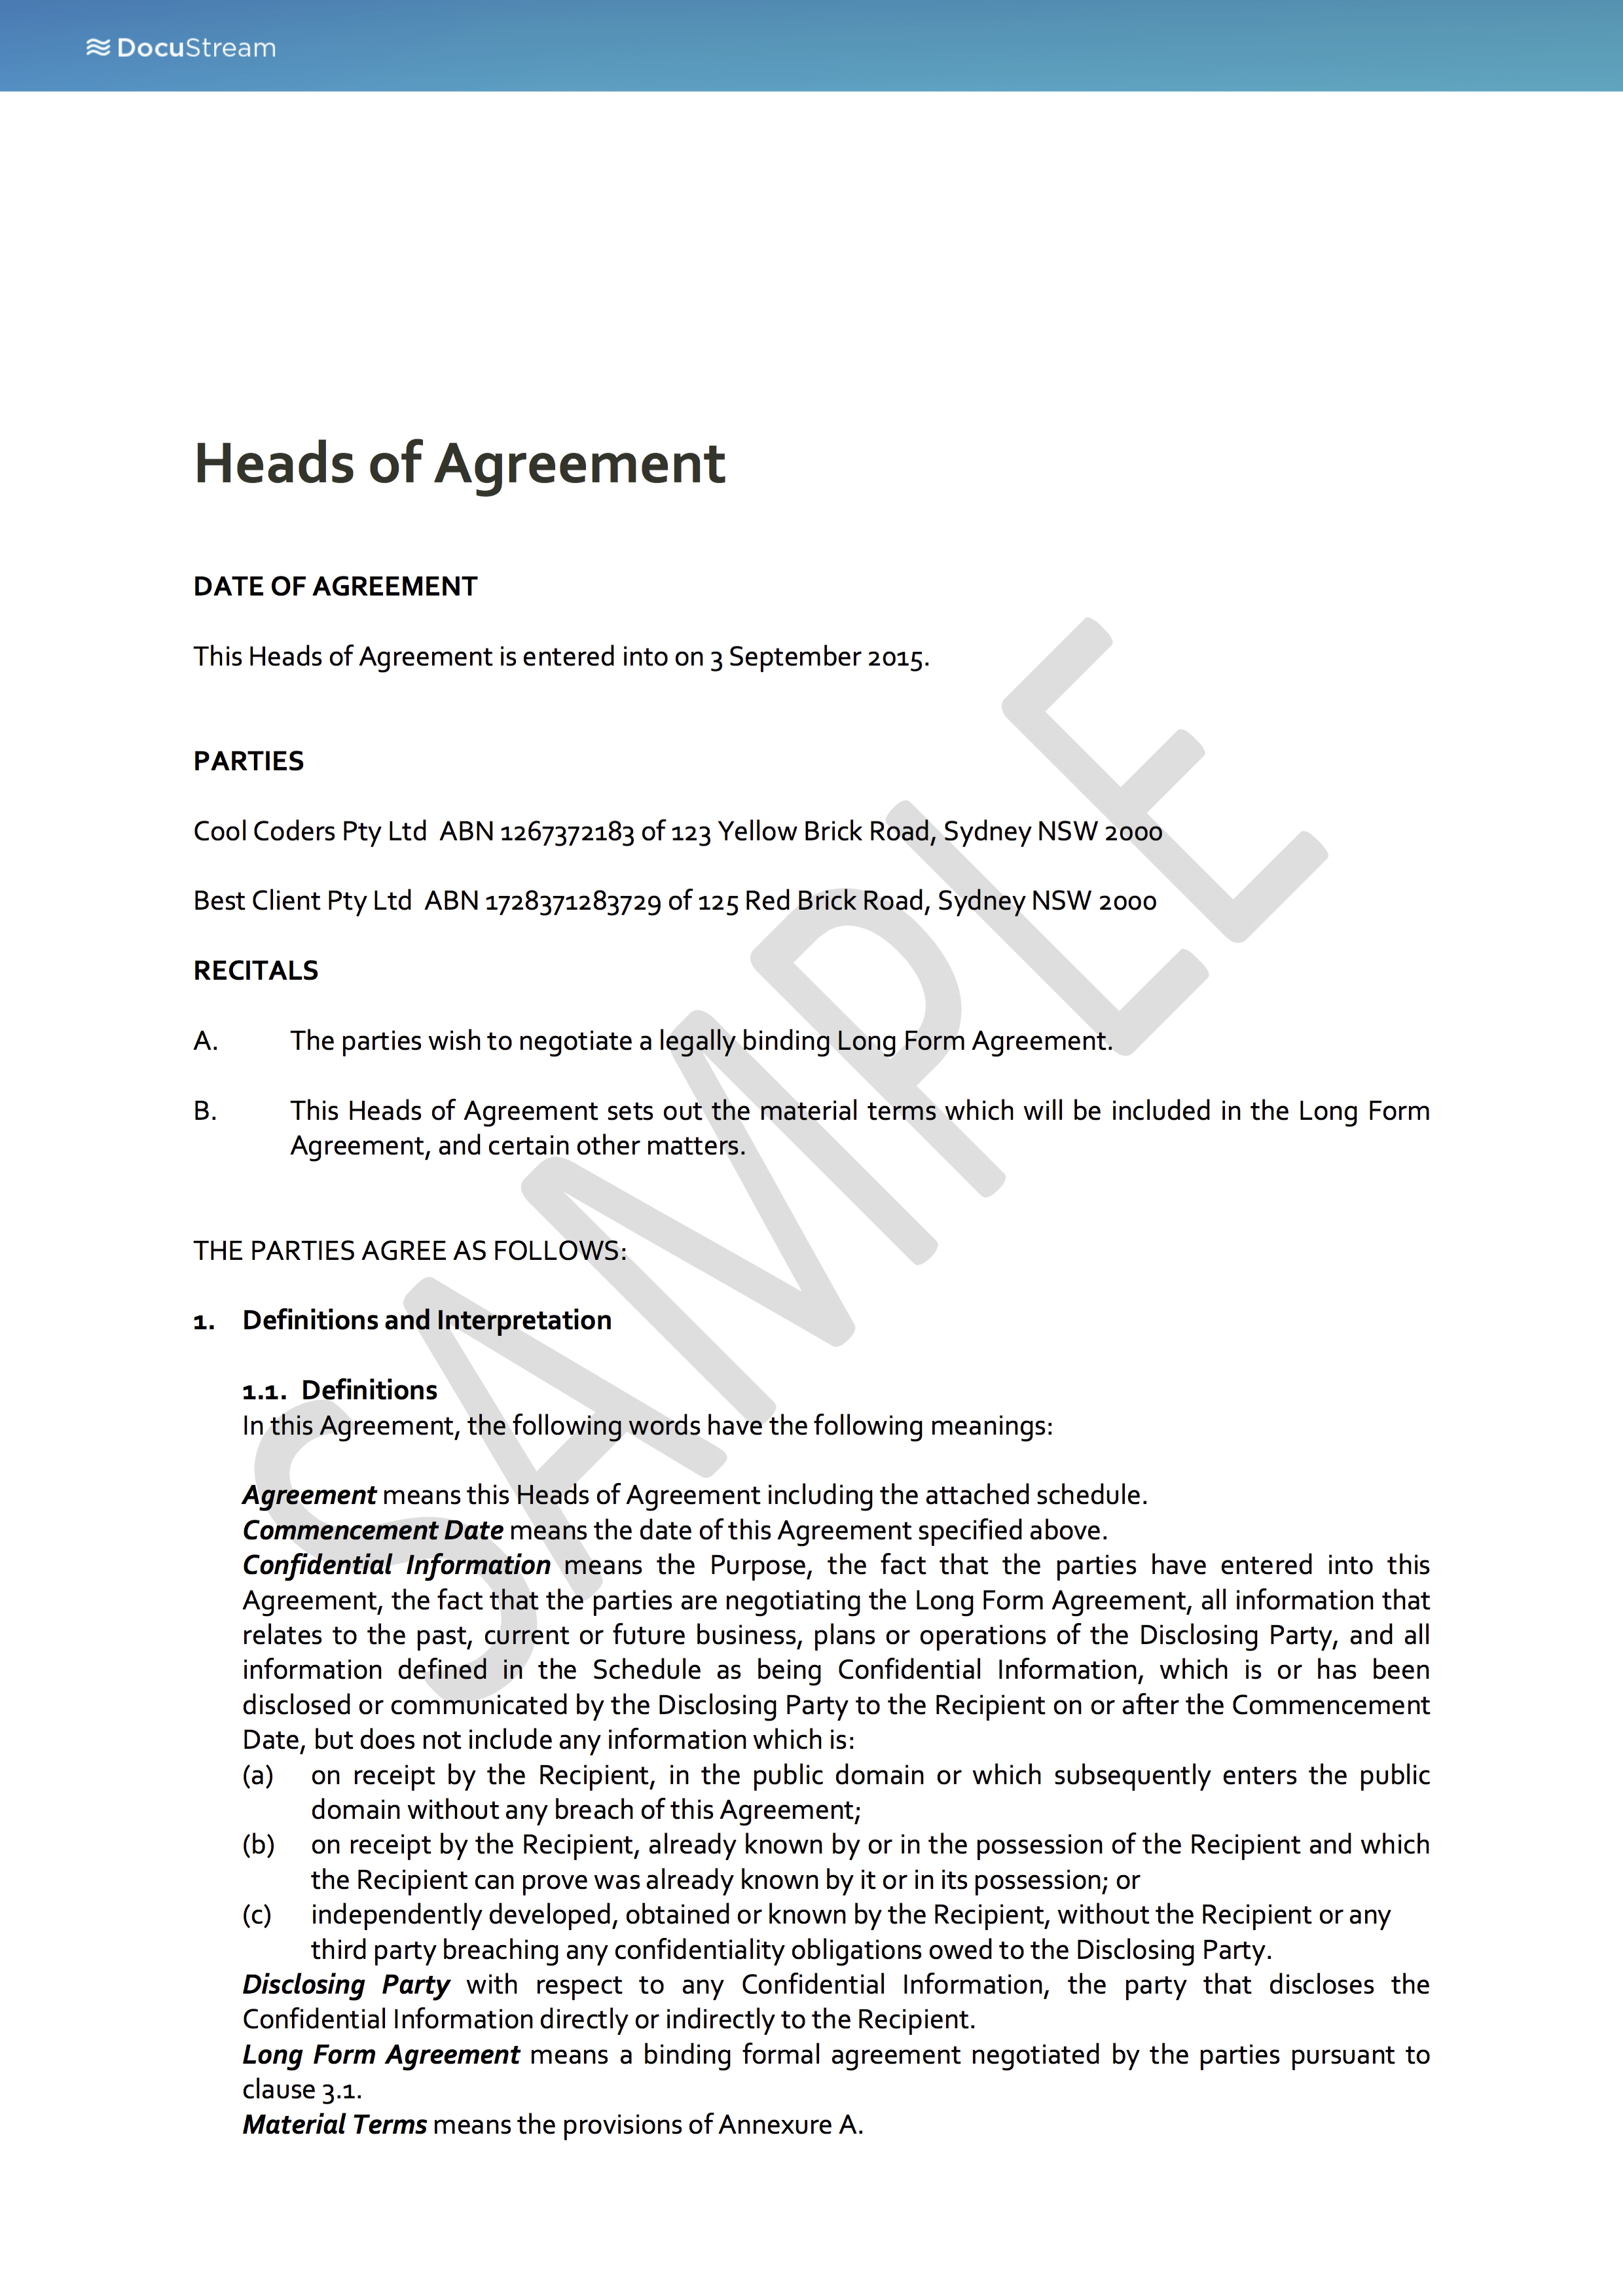 Nice Why Use DocuStream? With Heads Of Agreement Template Free